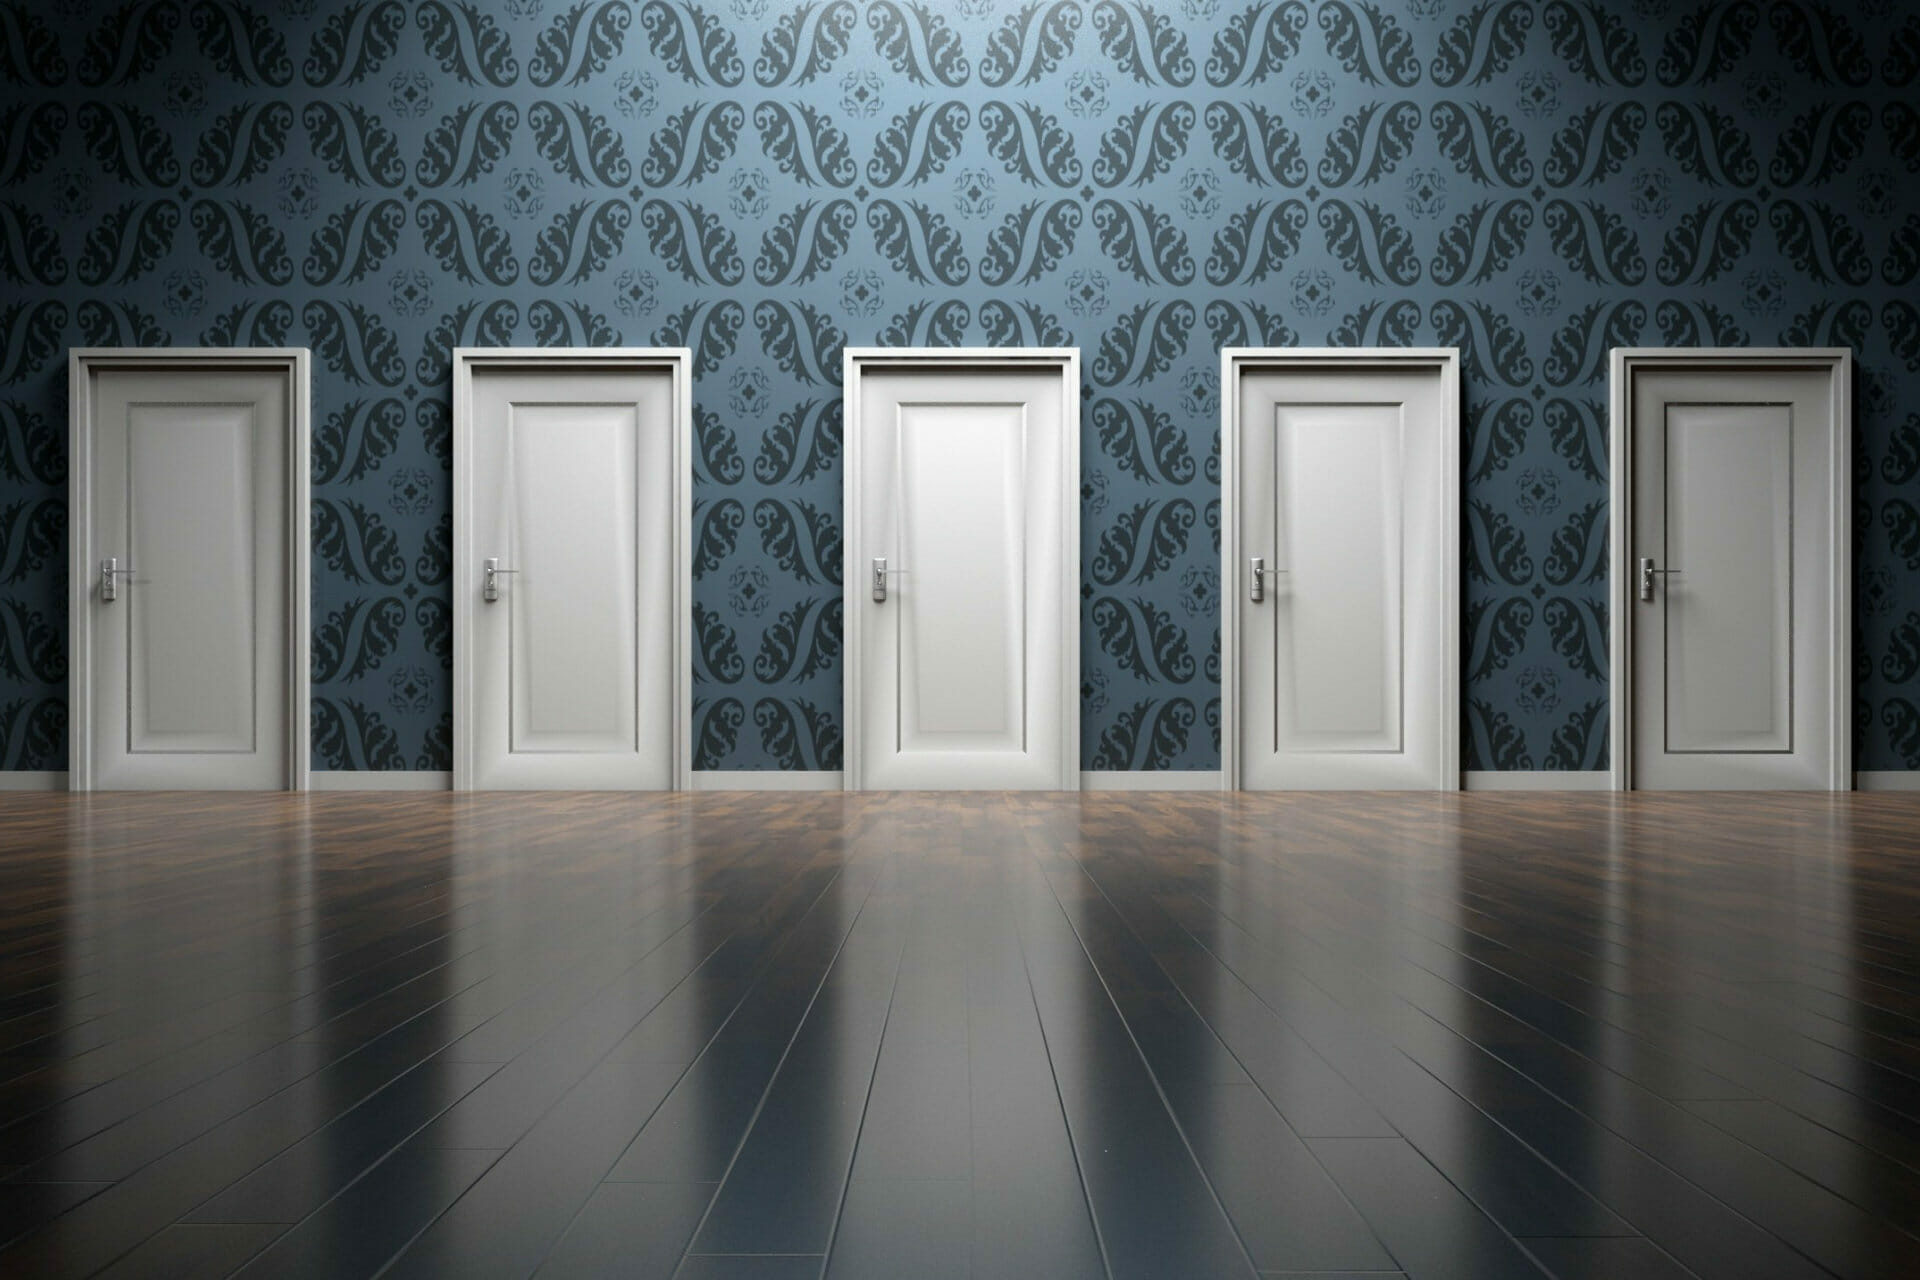 Should I take the opportunity? Why you should and why you shouldn't via @humangrowthlab